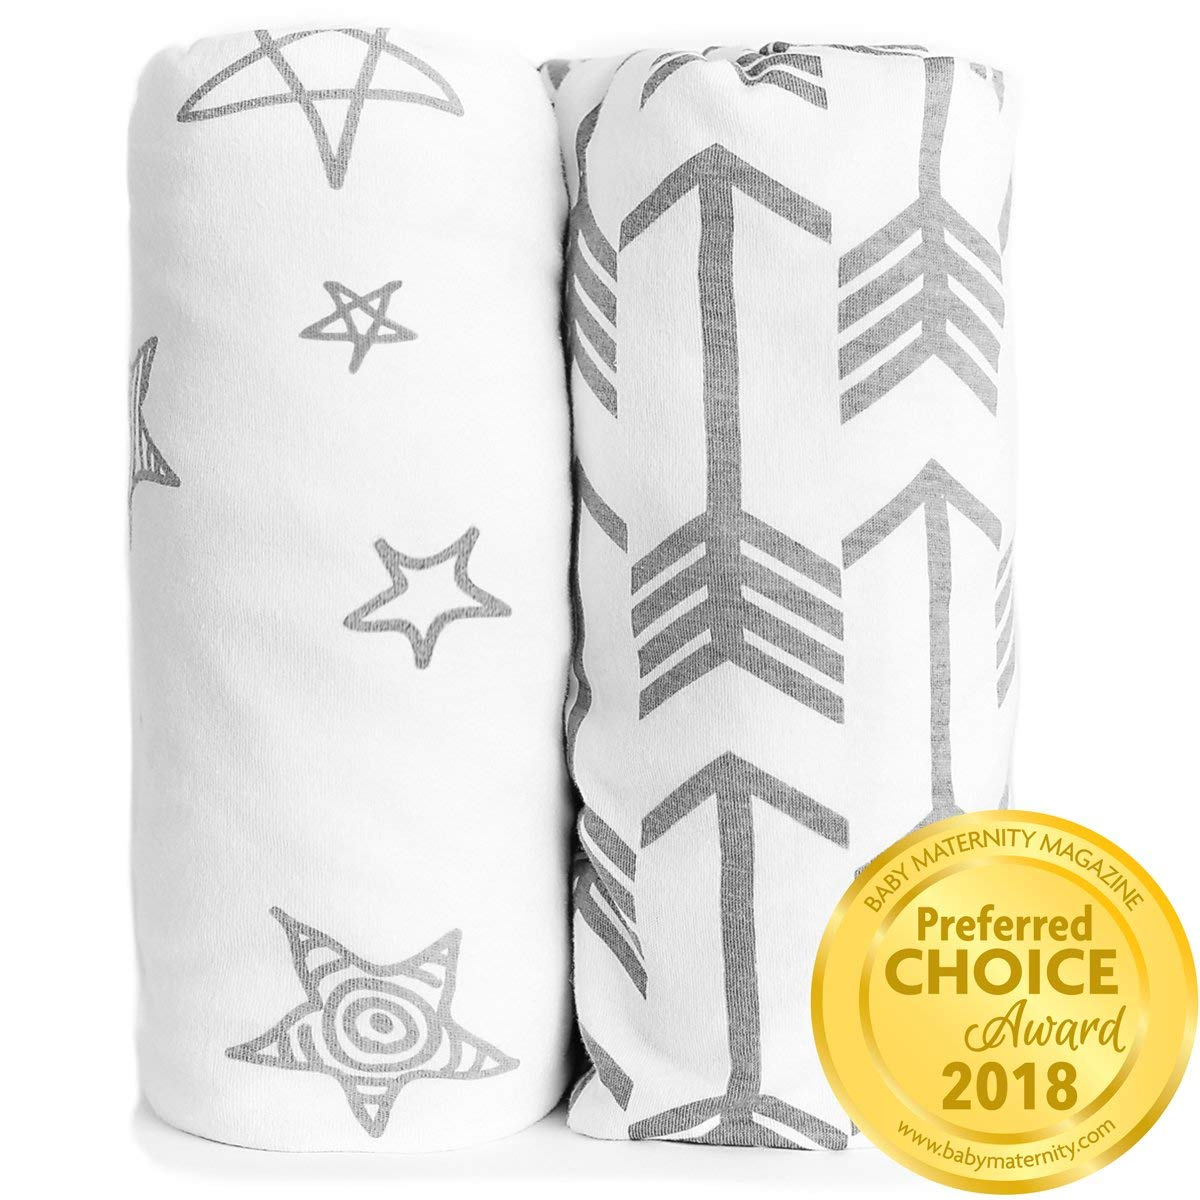 Crib Sheet Set 100% Jersey Cotton | 2-Pack | Fitted Cotton Baby & Toddler Universal Crib Sheets For Boy | Mattress Bedding Sets | Comfy Changing Pad Cover | White Sheets | Nursery Accessories by Kids N' Such